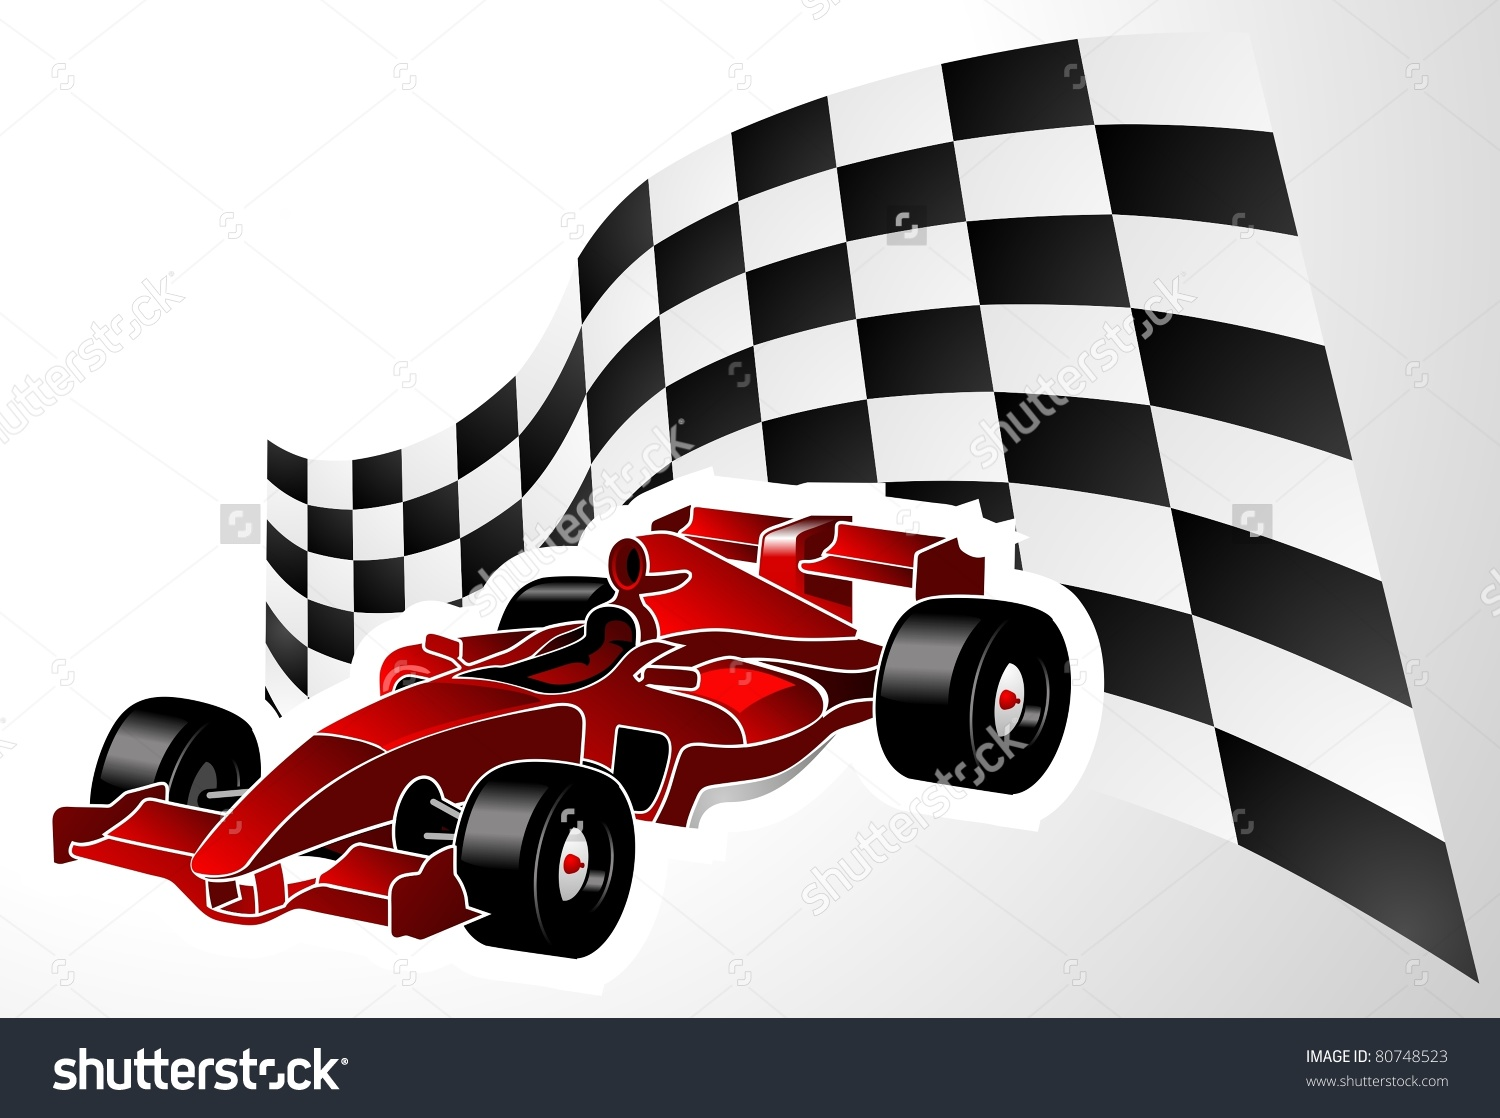 Formula One clipart racetrack One clipart racecar Formula Clipground